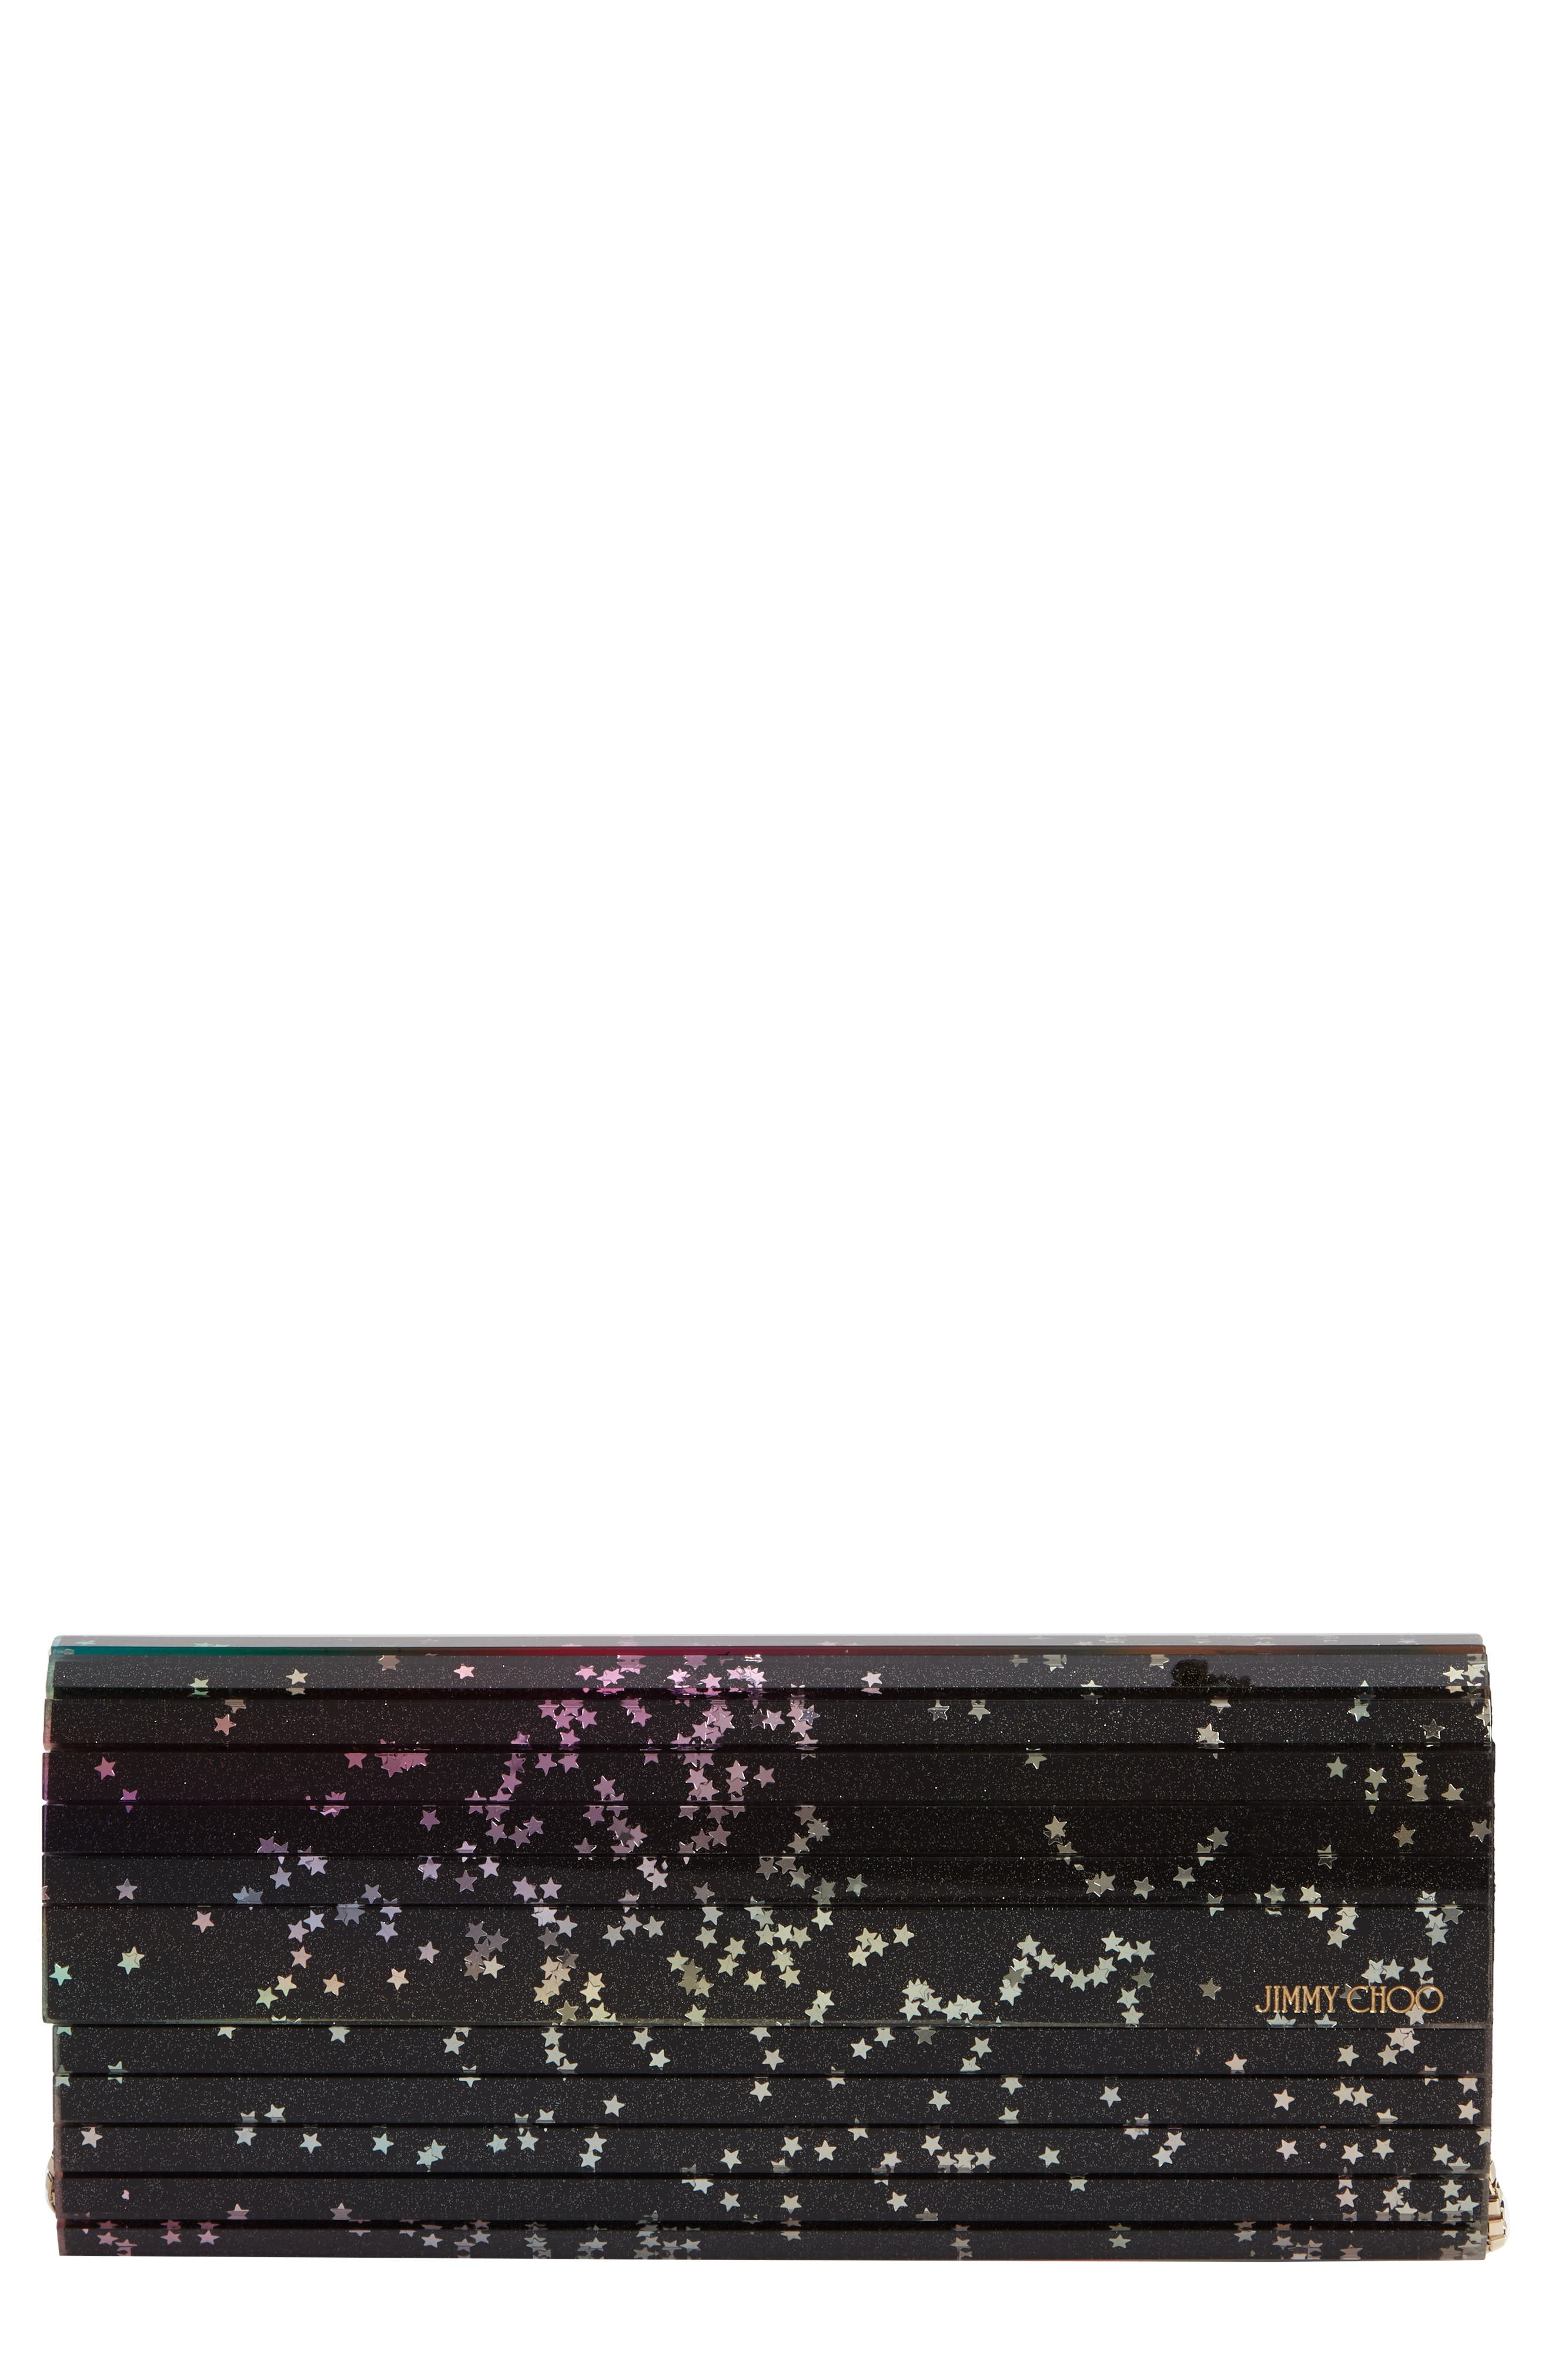 Sweetie Star Clutch,                             Main thumbnail 1, color,                             BLACK MULTI